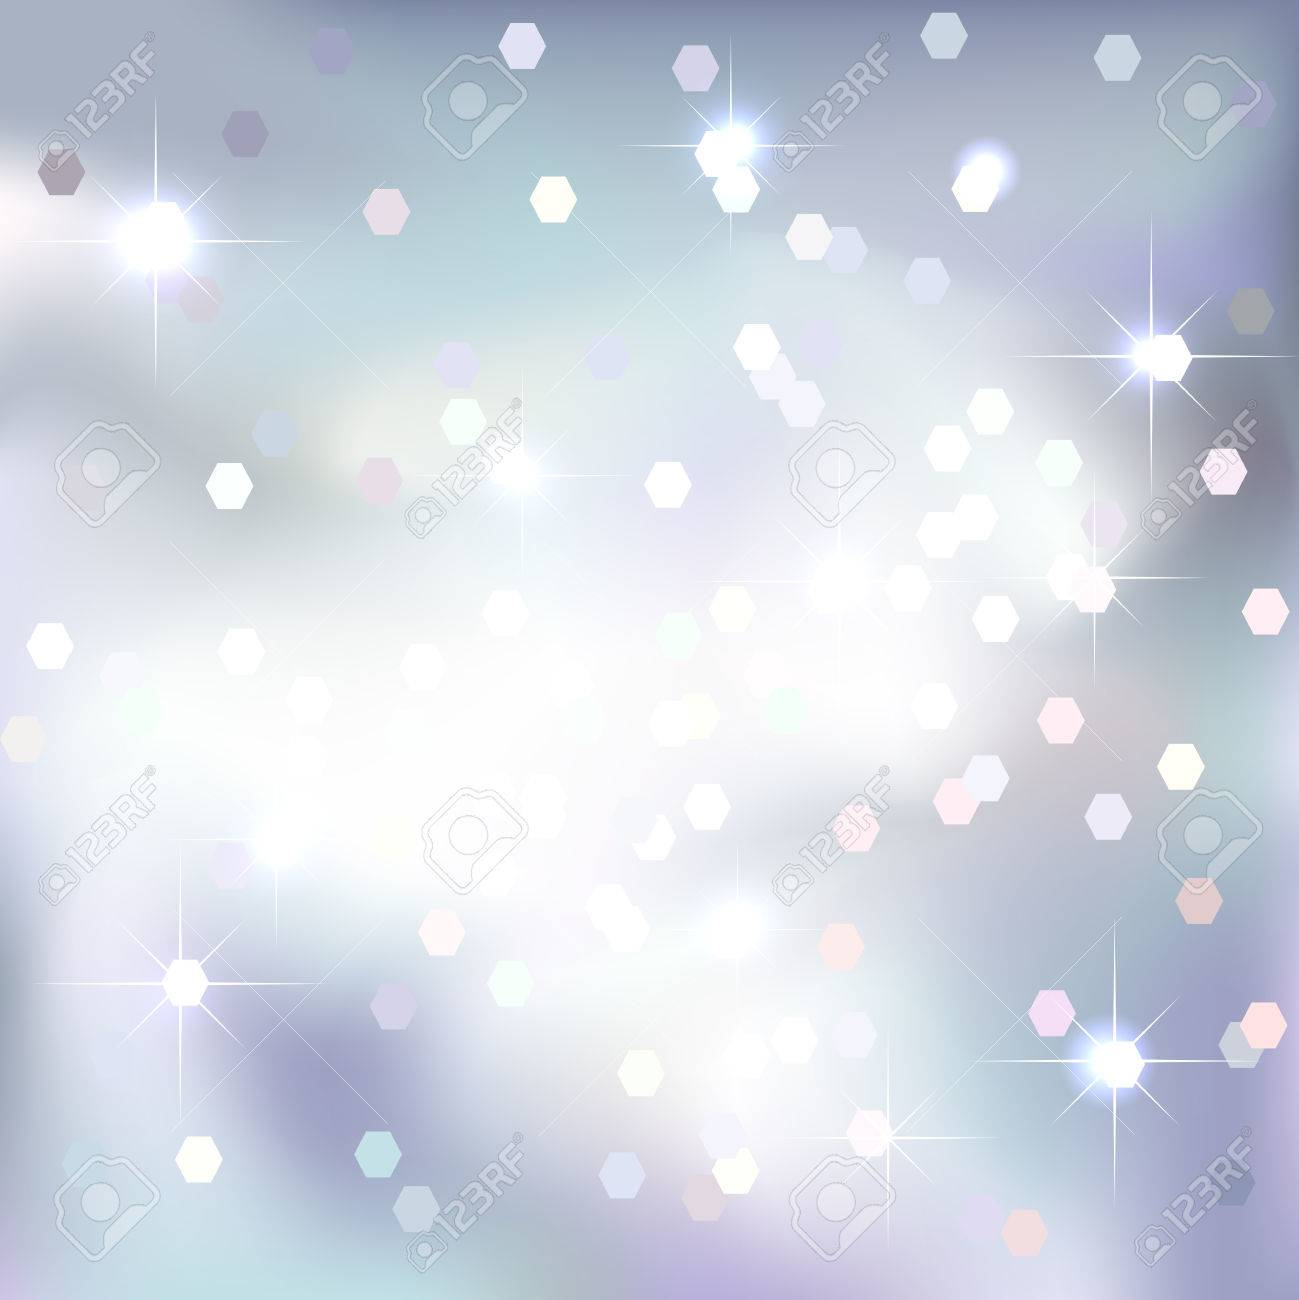 abstract background festive design magical new year christmas wedding event style